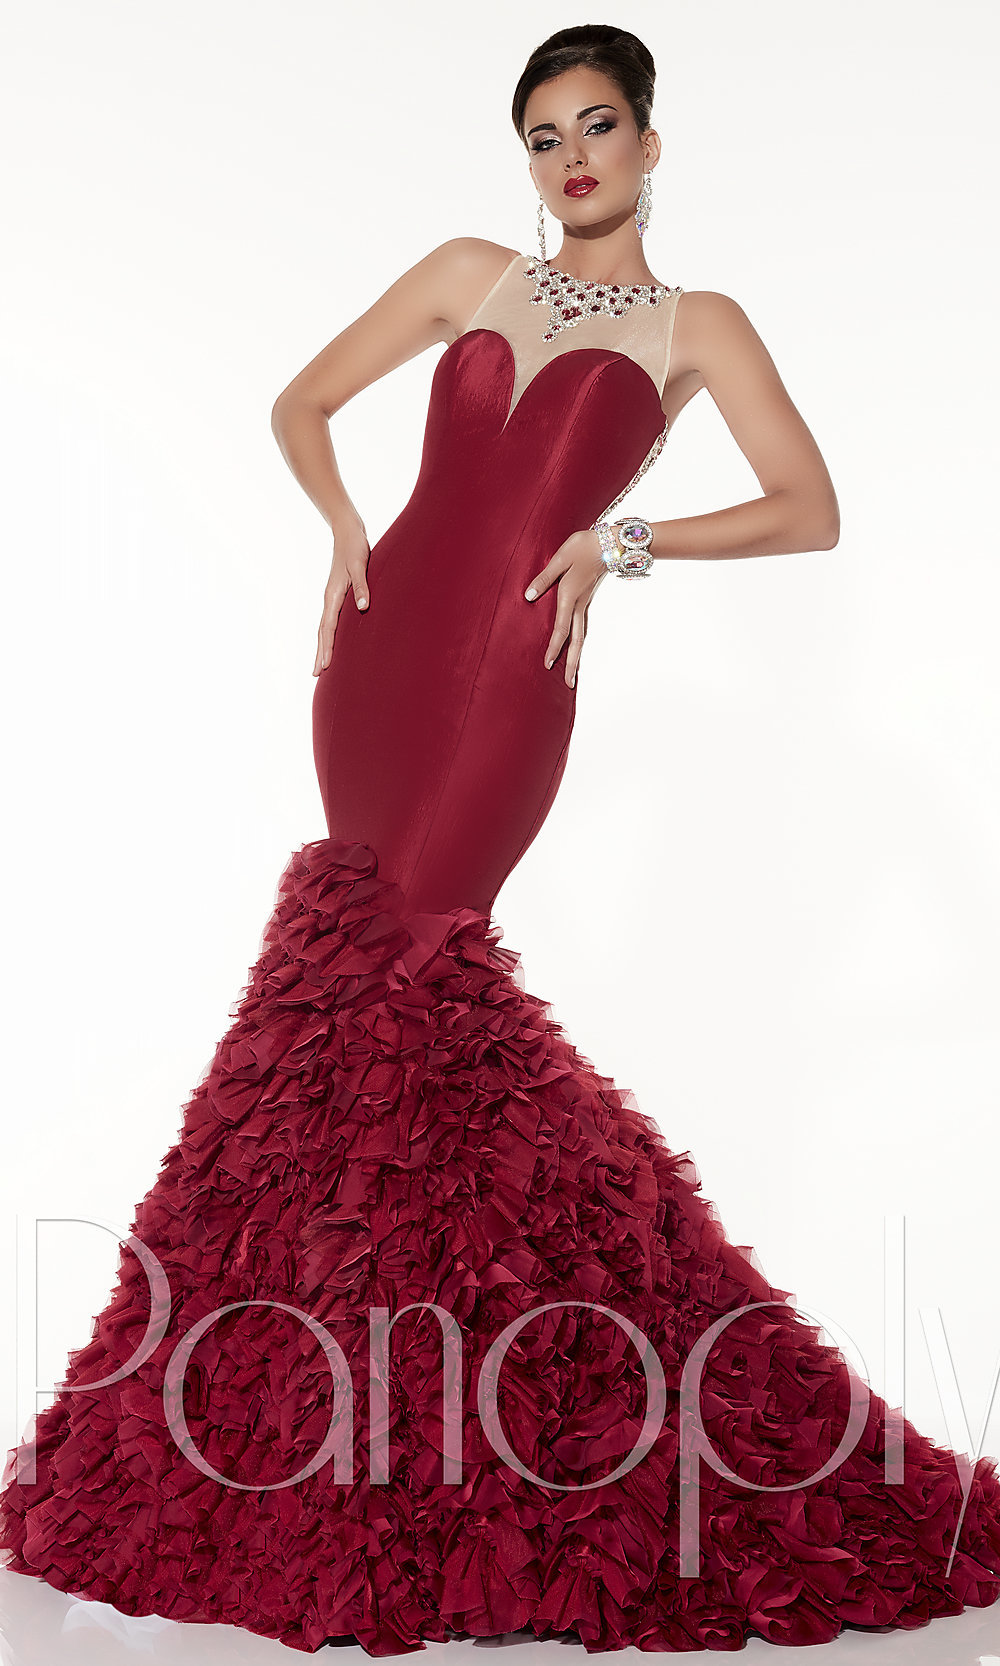 Panoply Red Carpet Prom Dresses, Pageant Gowns